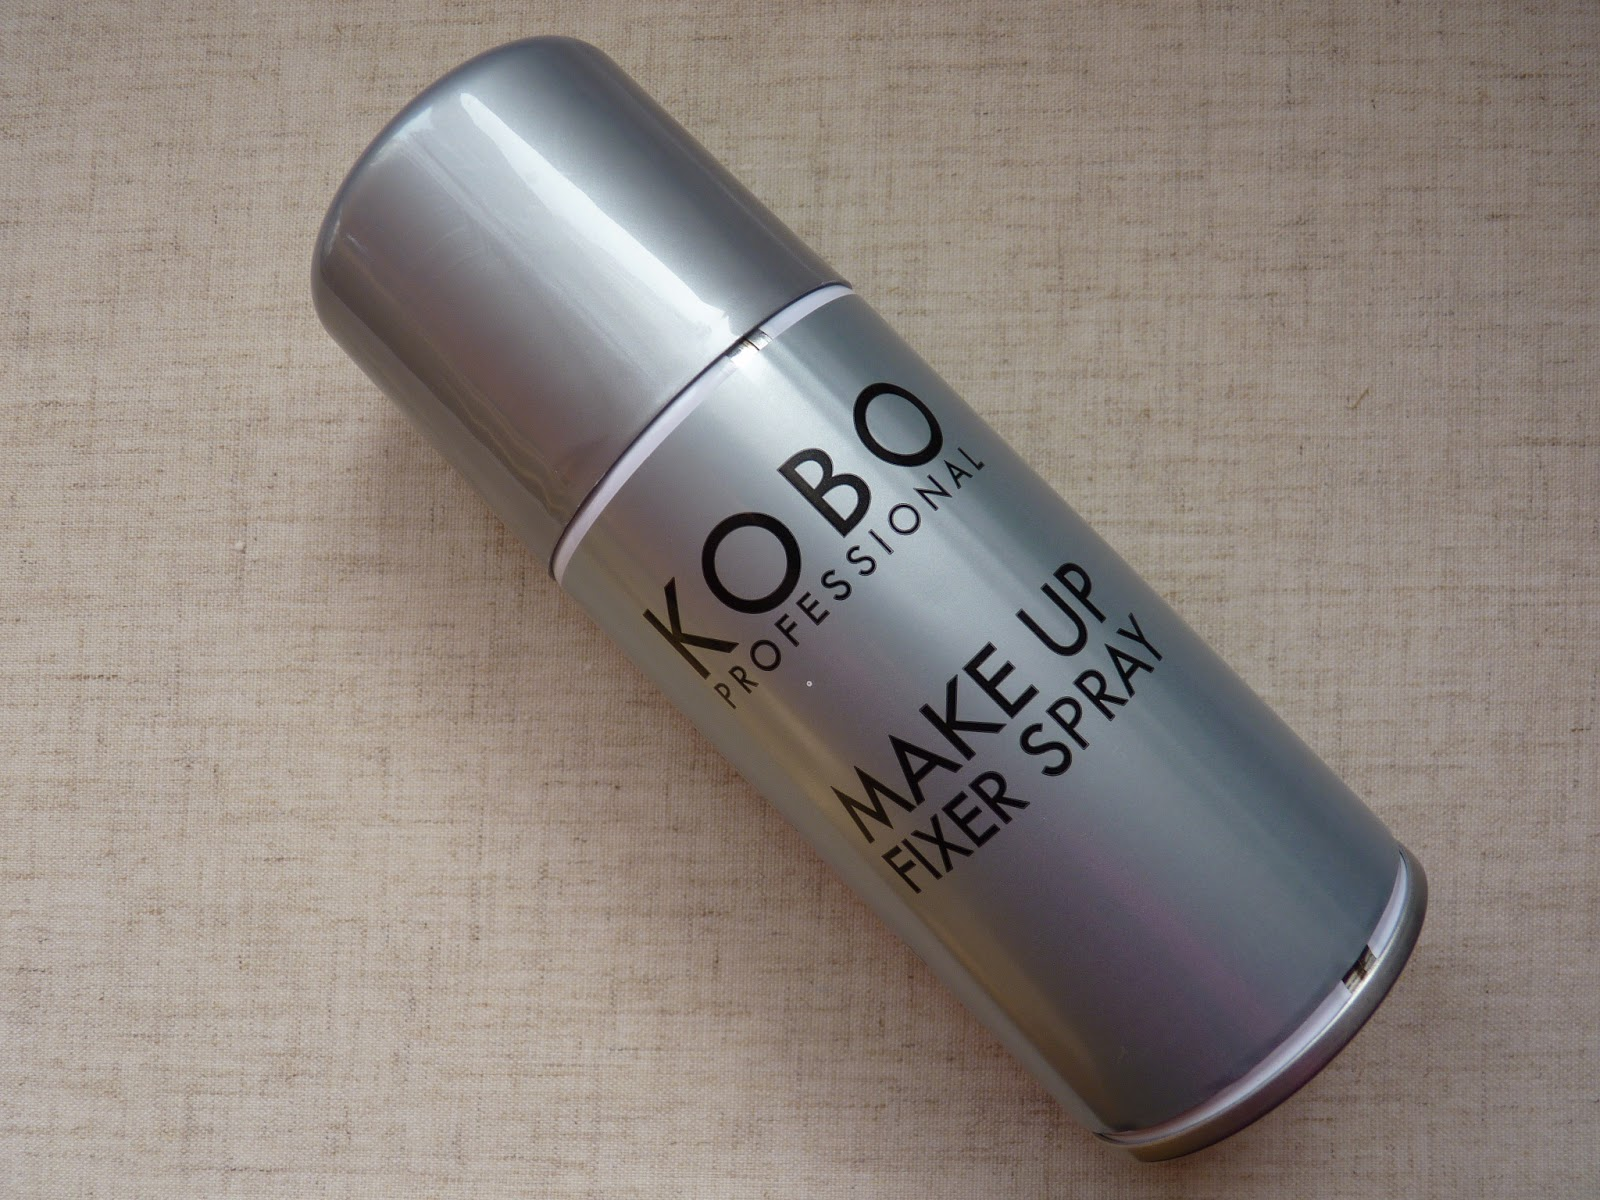 Kobo Professional Make Up Fixer Spray